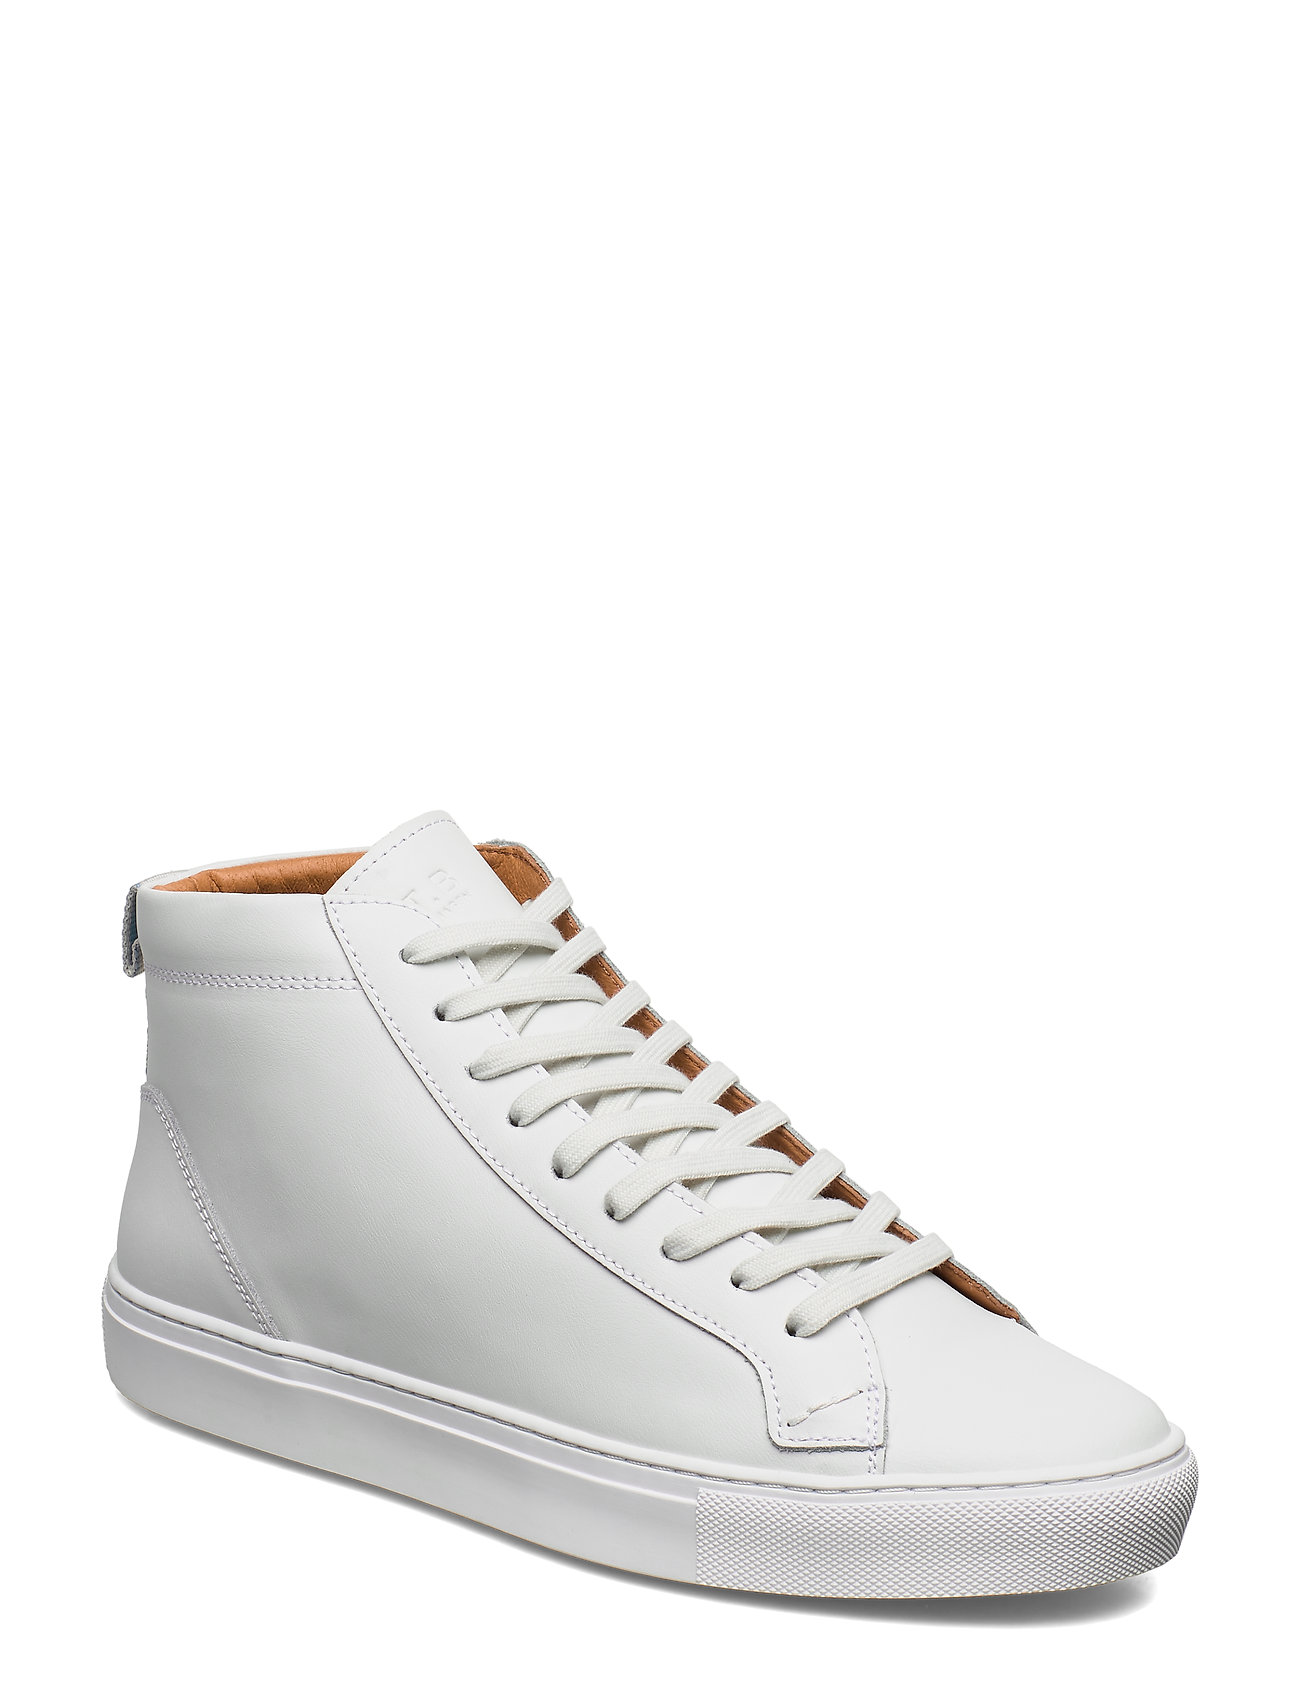 Image of Stb-Holmes L High-top Sneakers Hvid Shoe The Bear (3338943243)